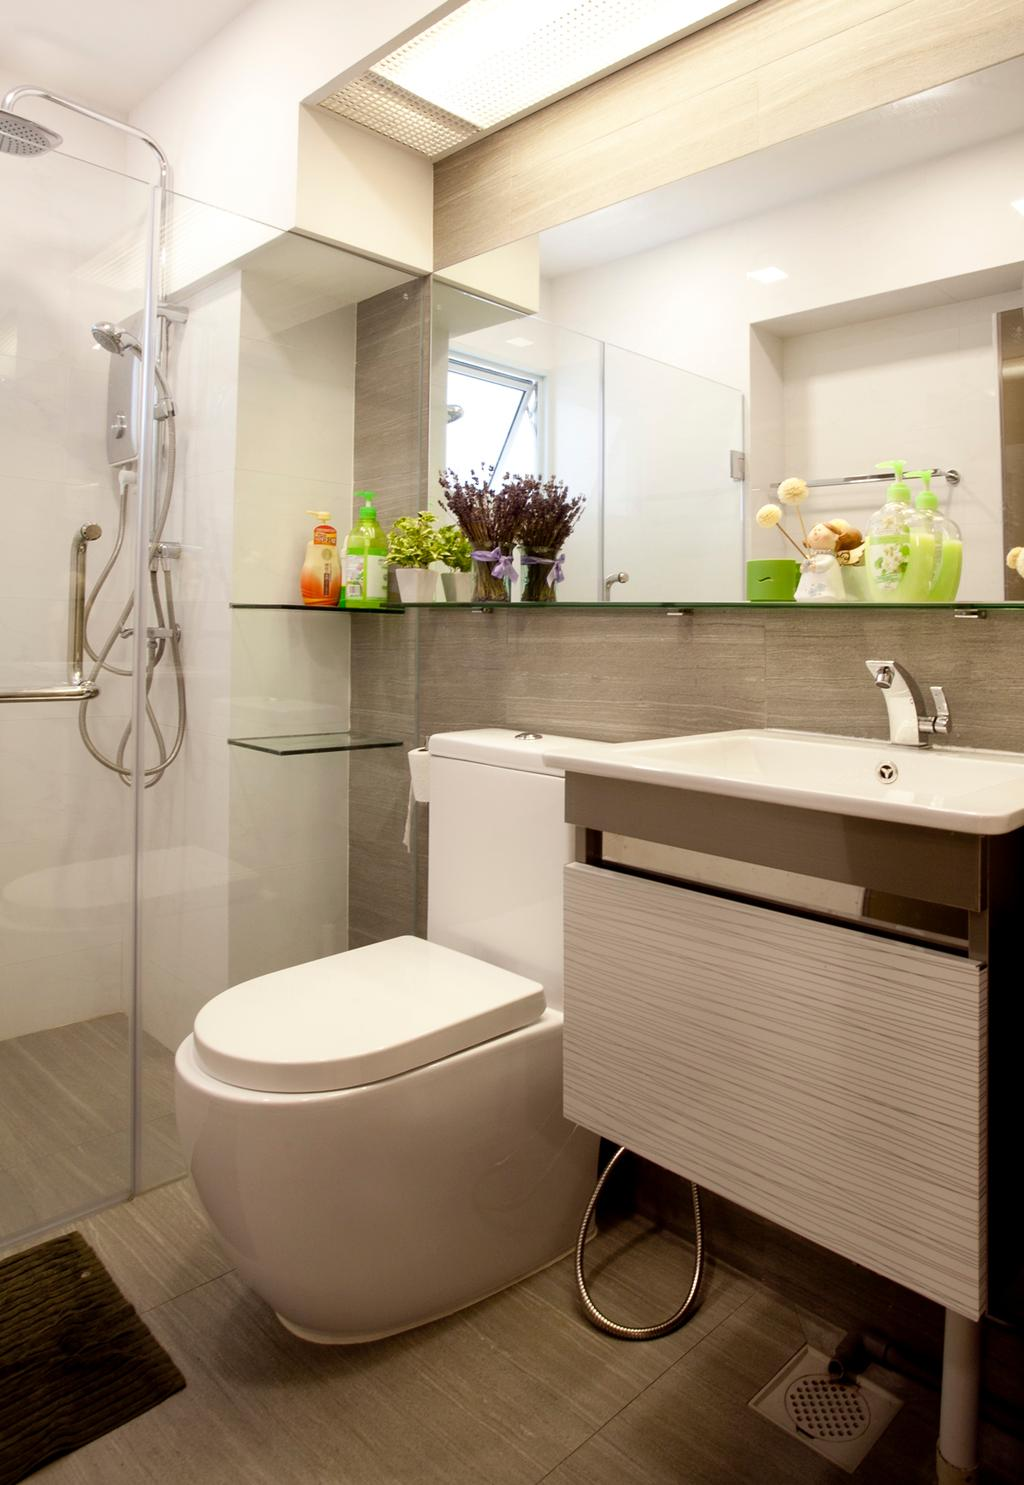 Contemporary, HDB, Bathroom, Toa Payoh (Block 62), Interior Designer, United Team Lifestyle, Water Closet, Toilet Bowl, Bathroom Vanity, Sink, Bathroom Sink, Mirror, Bathroom Shelf, Flora, Jar, Plant, Potted Plant, Pottery, Vase, Toilet, Indoors, Interior Design, Room